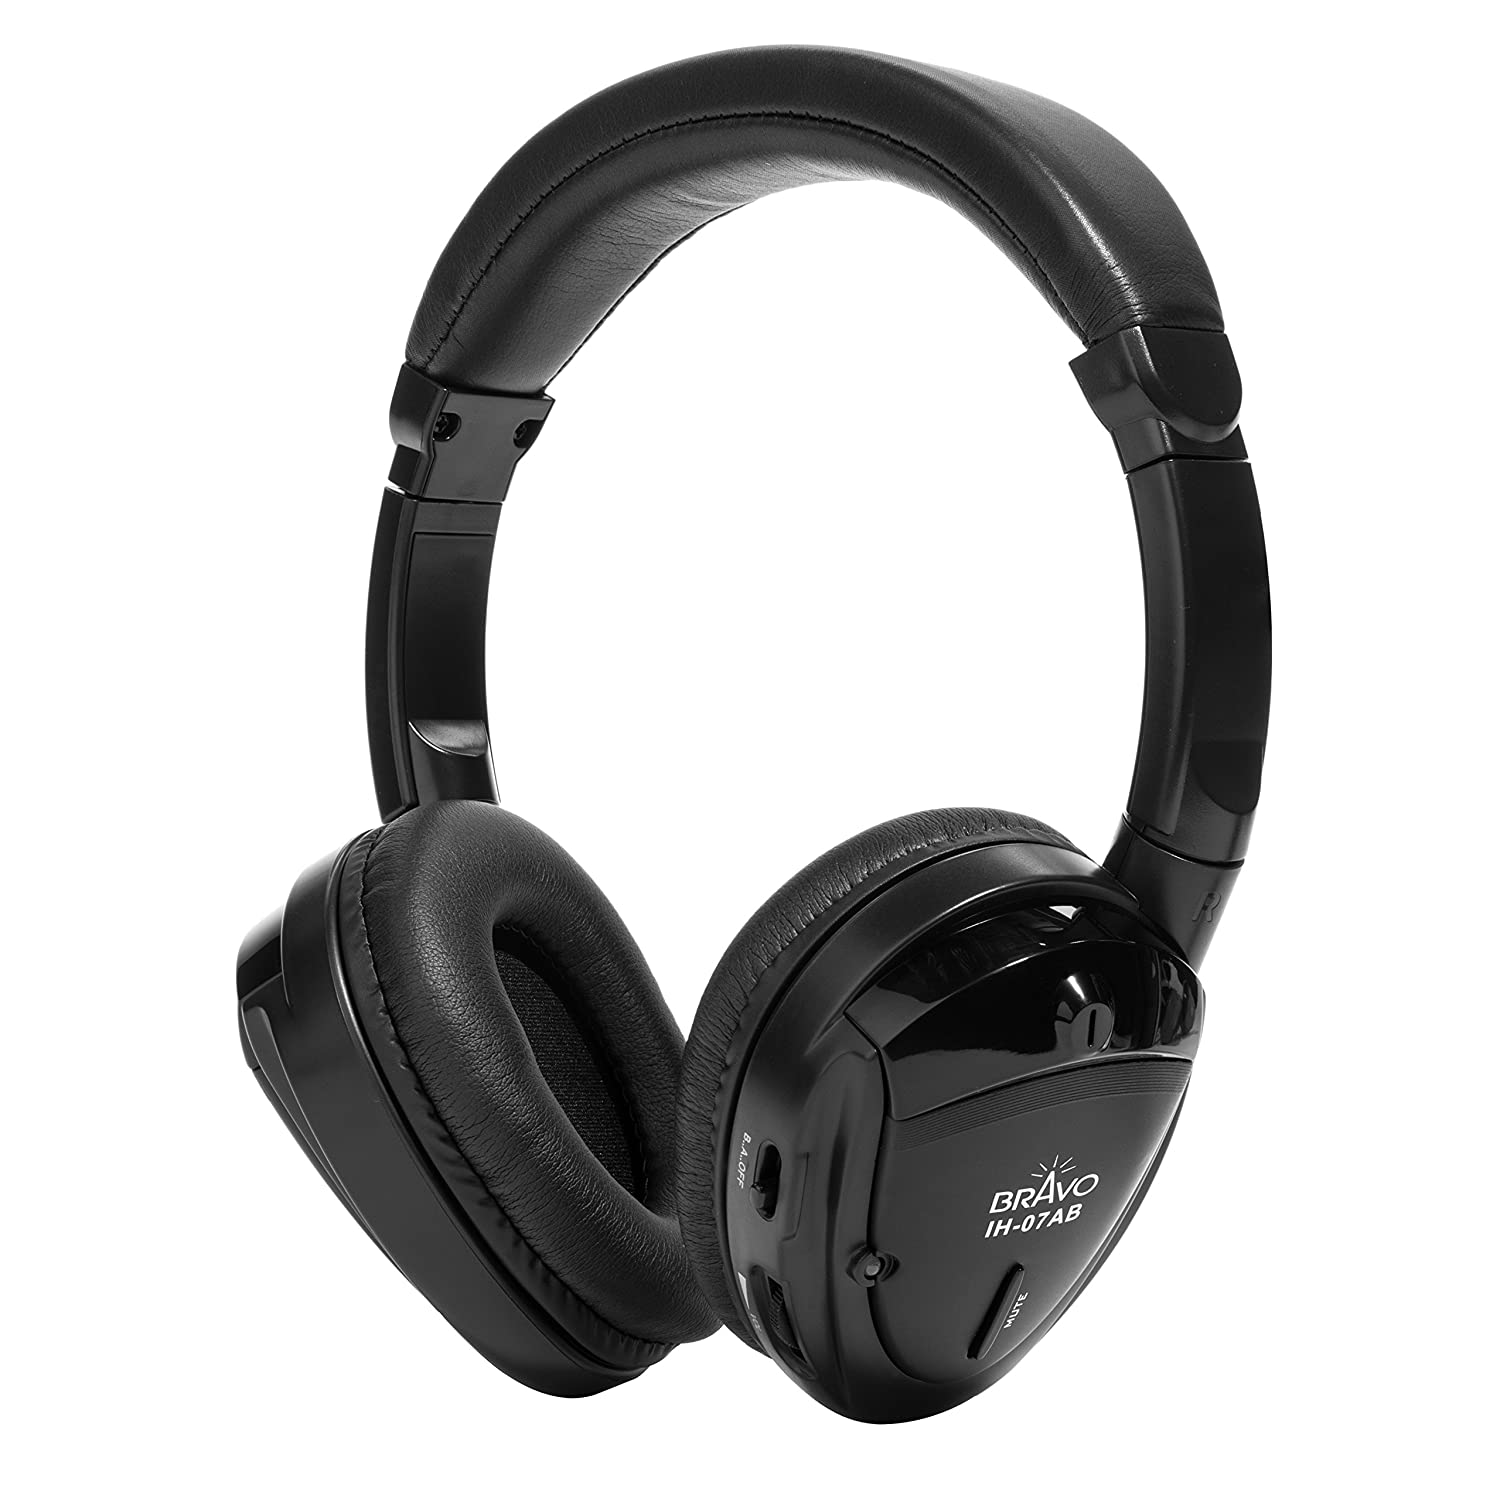 Bravo View IH-05A SINGLE SOURCE Automotive IR Wireless Headphones Bravo View Technology